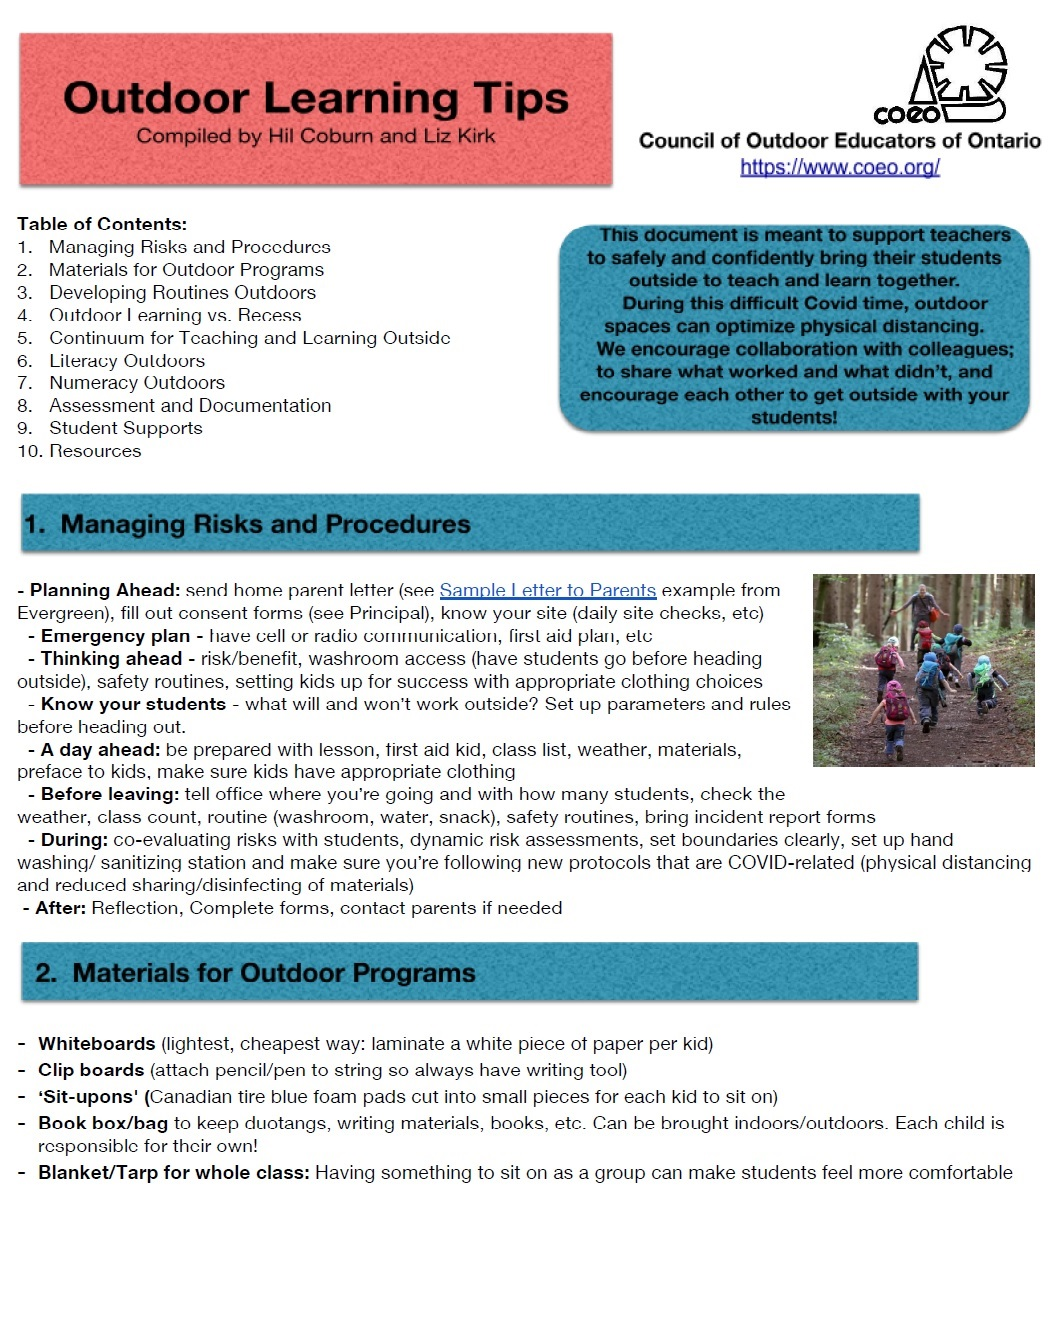 Outdoor Learning Tips - managing risks and procedures; materials for outdoor programs